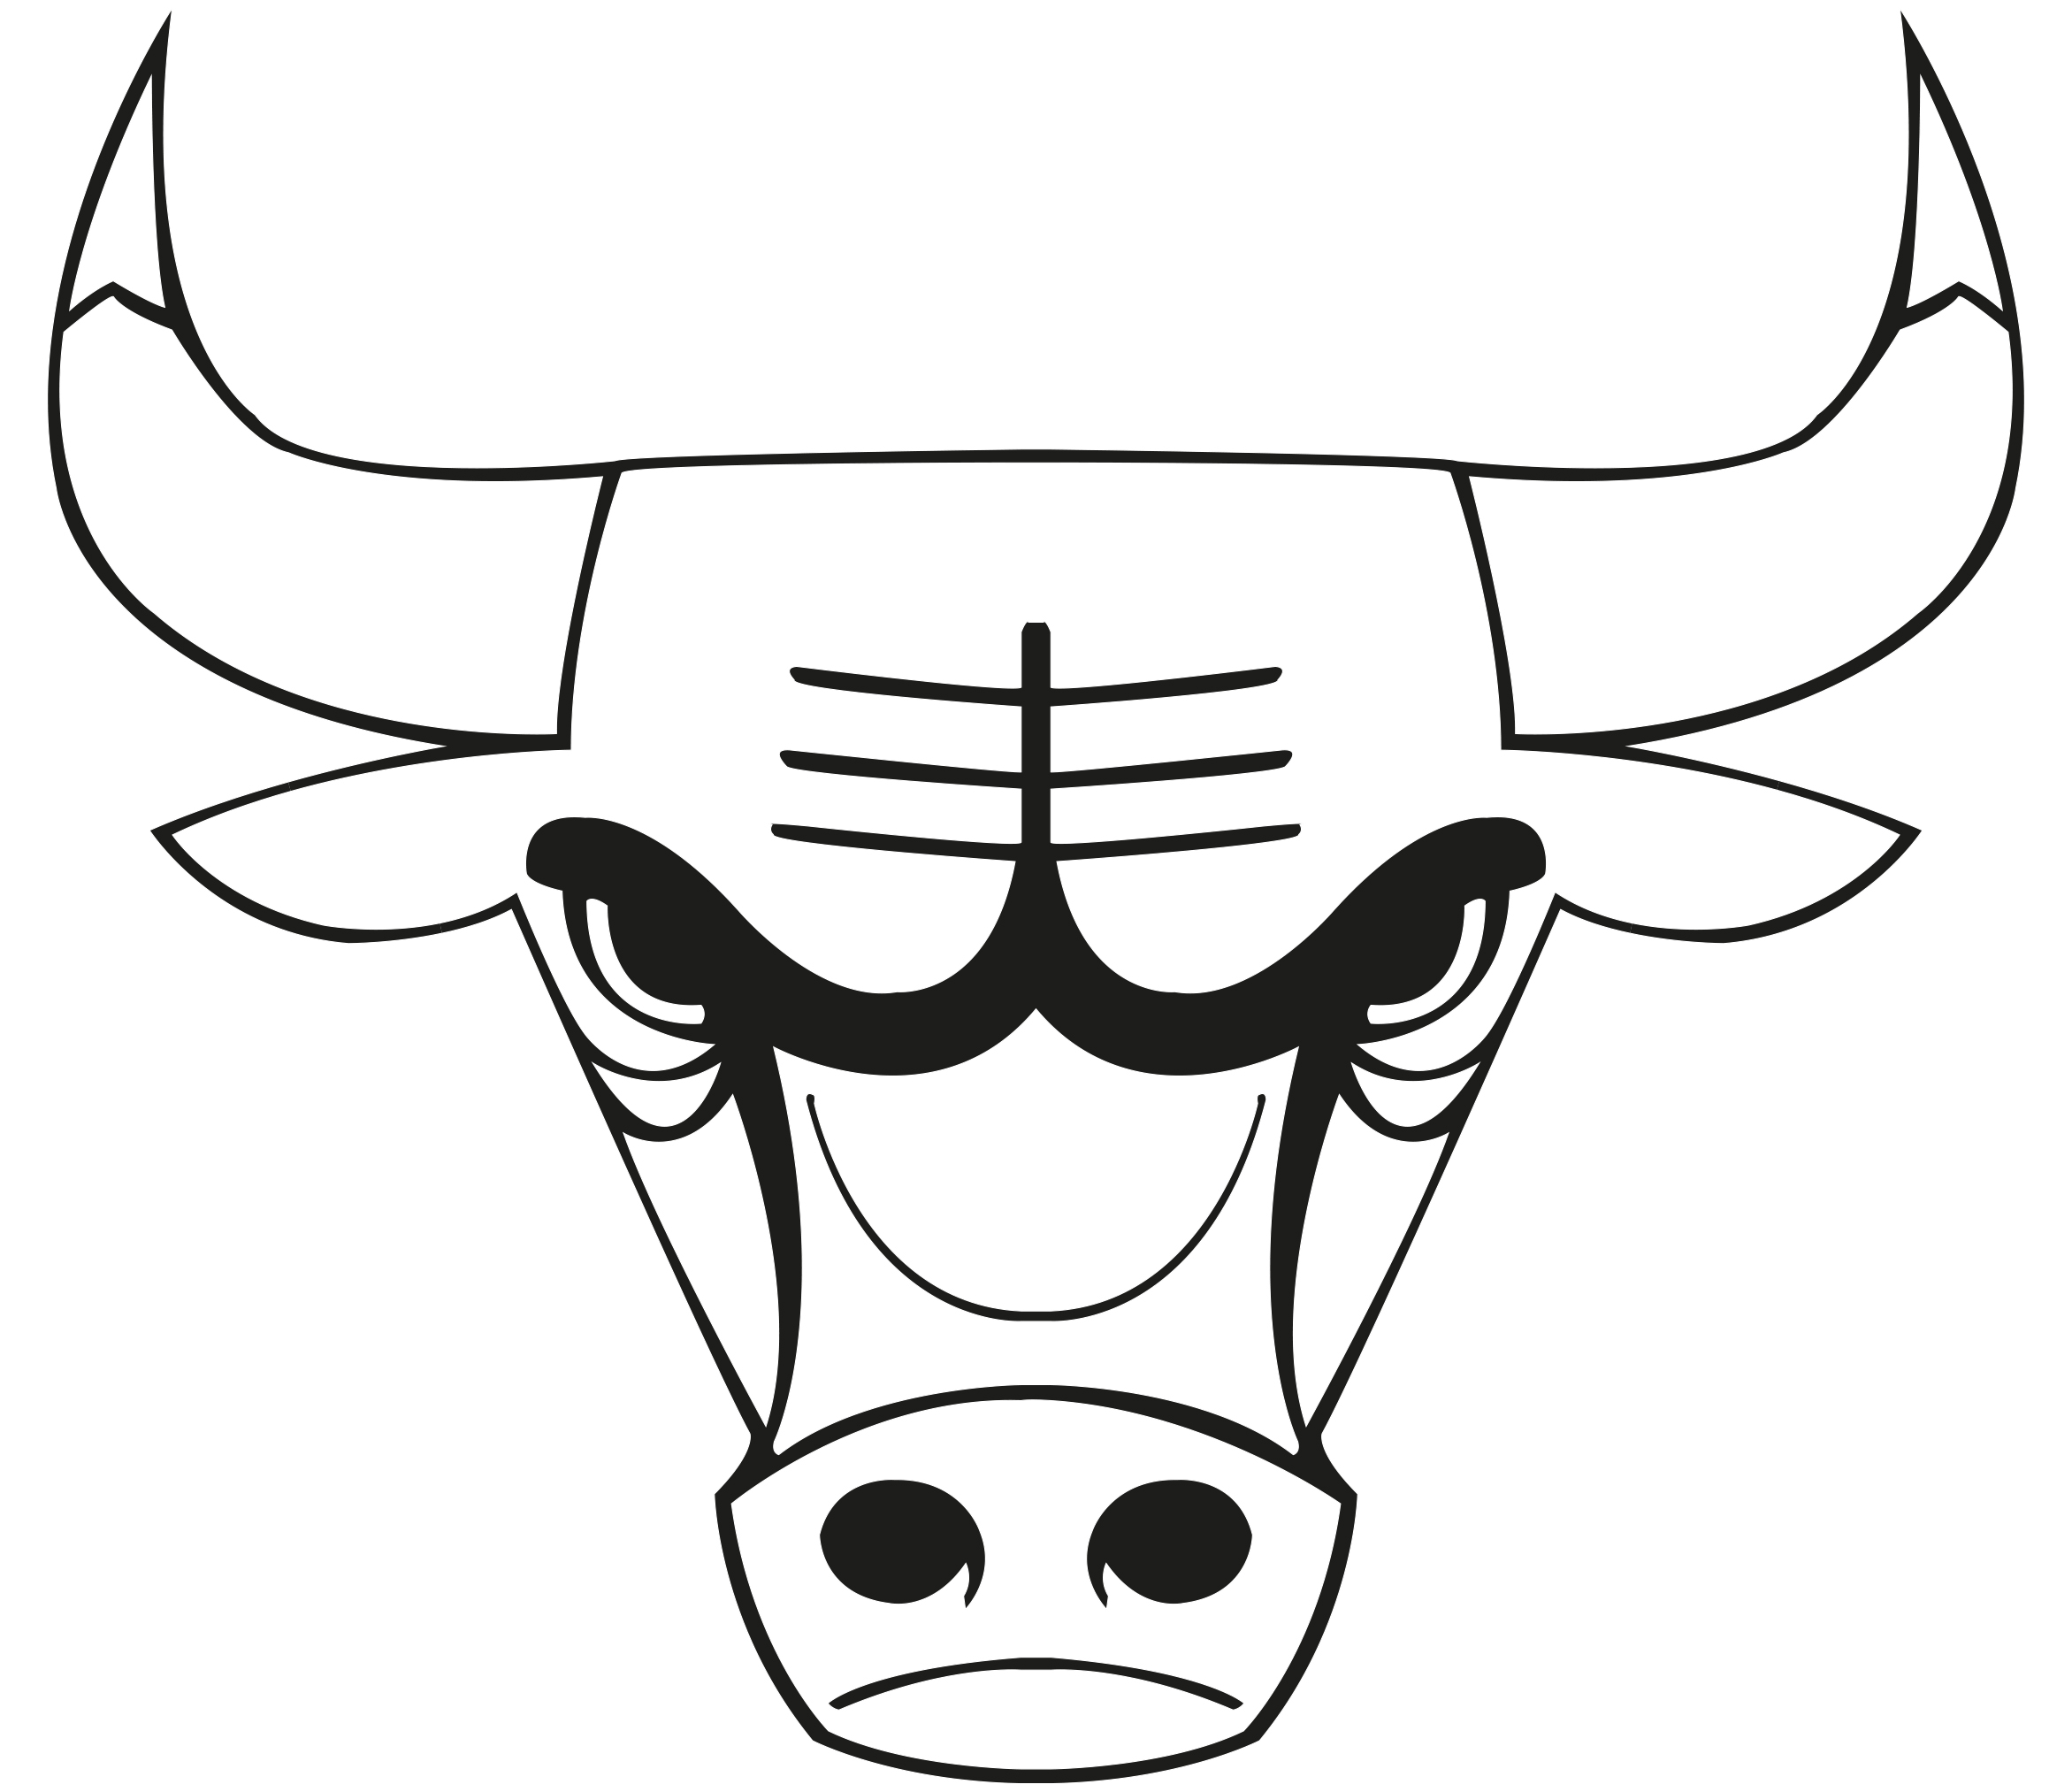 2343x2026 Images Of The Chicago Bulls Logo Chicago Bulls Colouring Pages